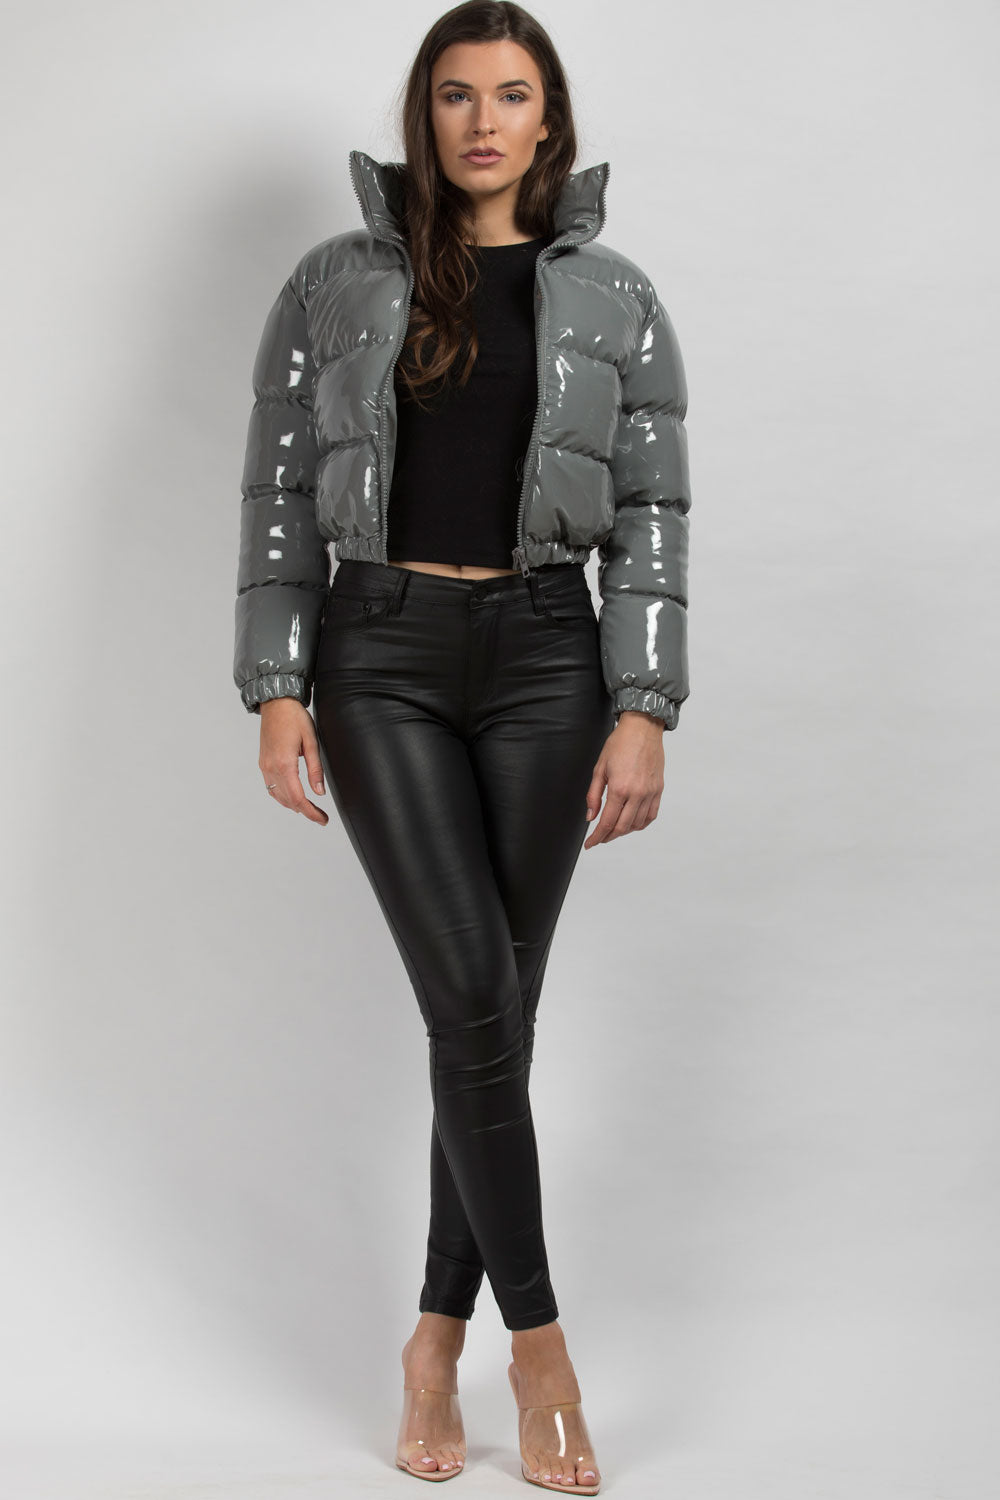 grey vinyl wet look shiny puffer crop jacket